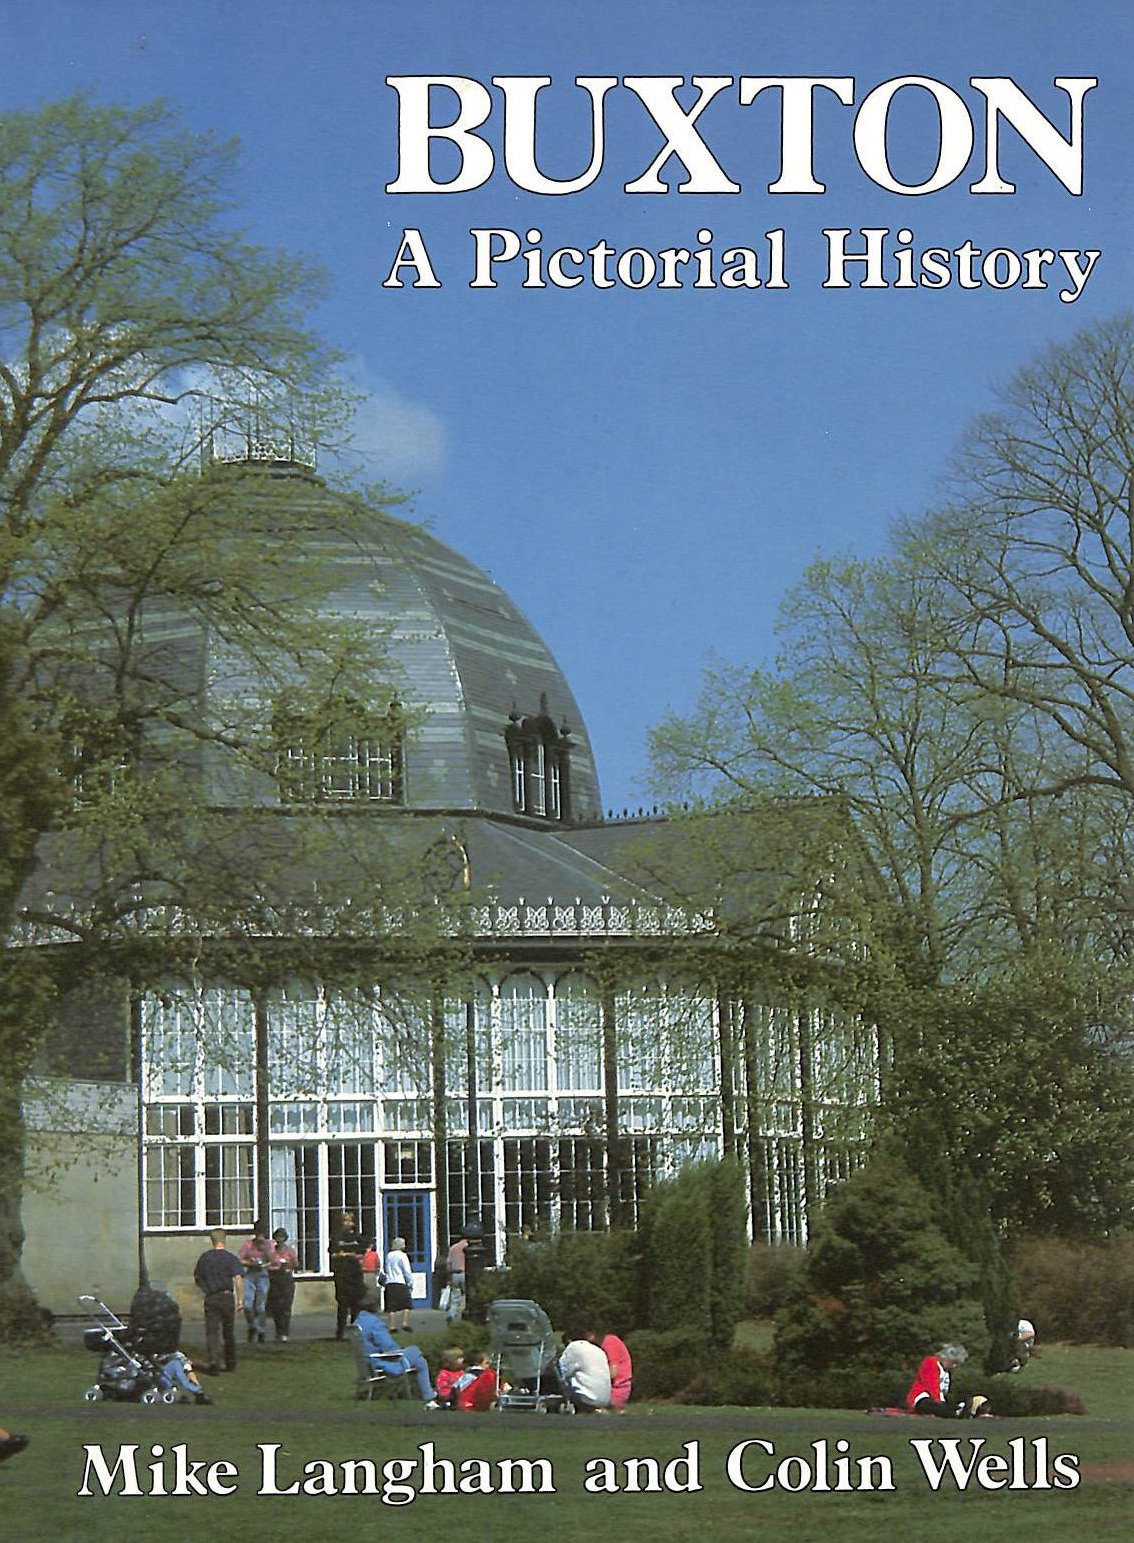 Image for Buxton: A Pictorial History (Pictorial history series)